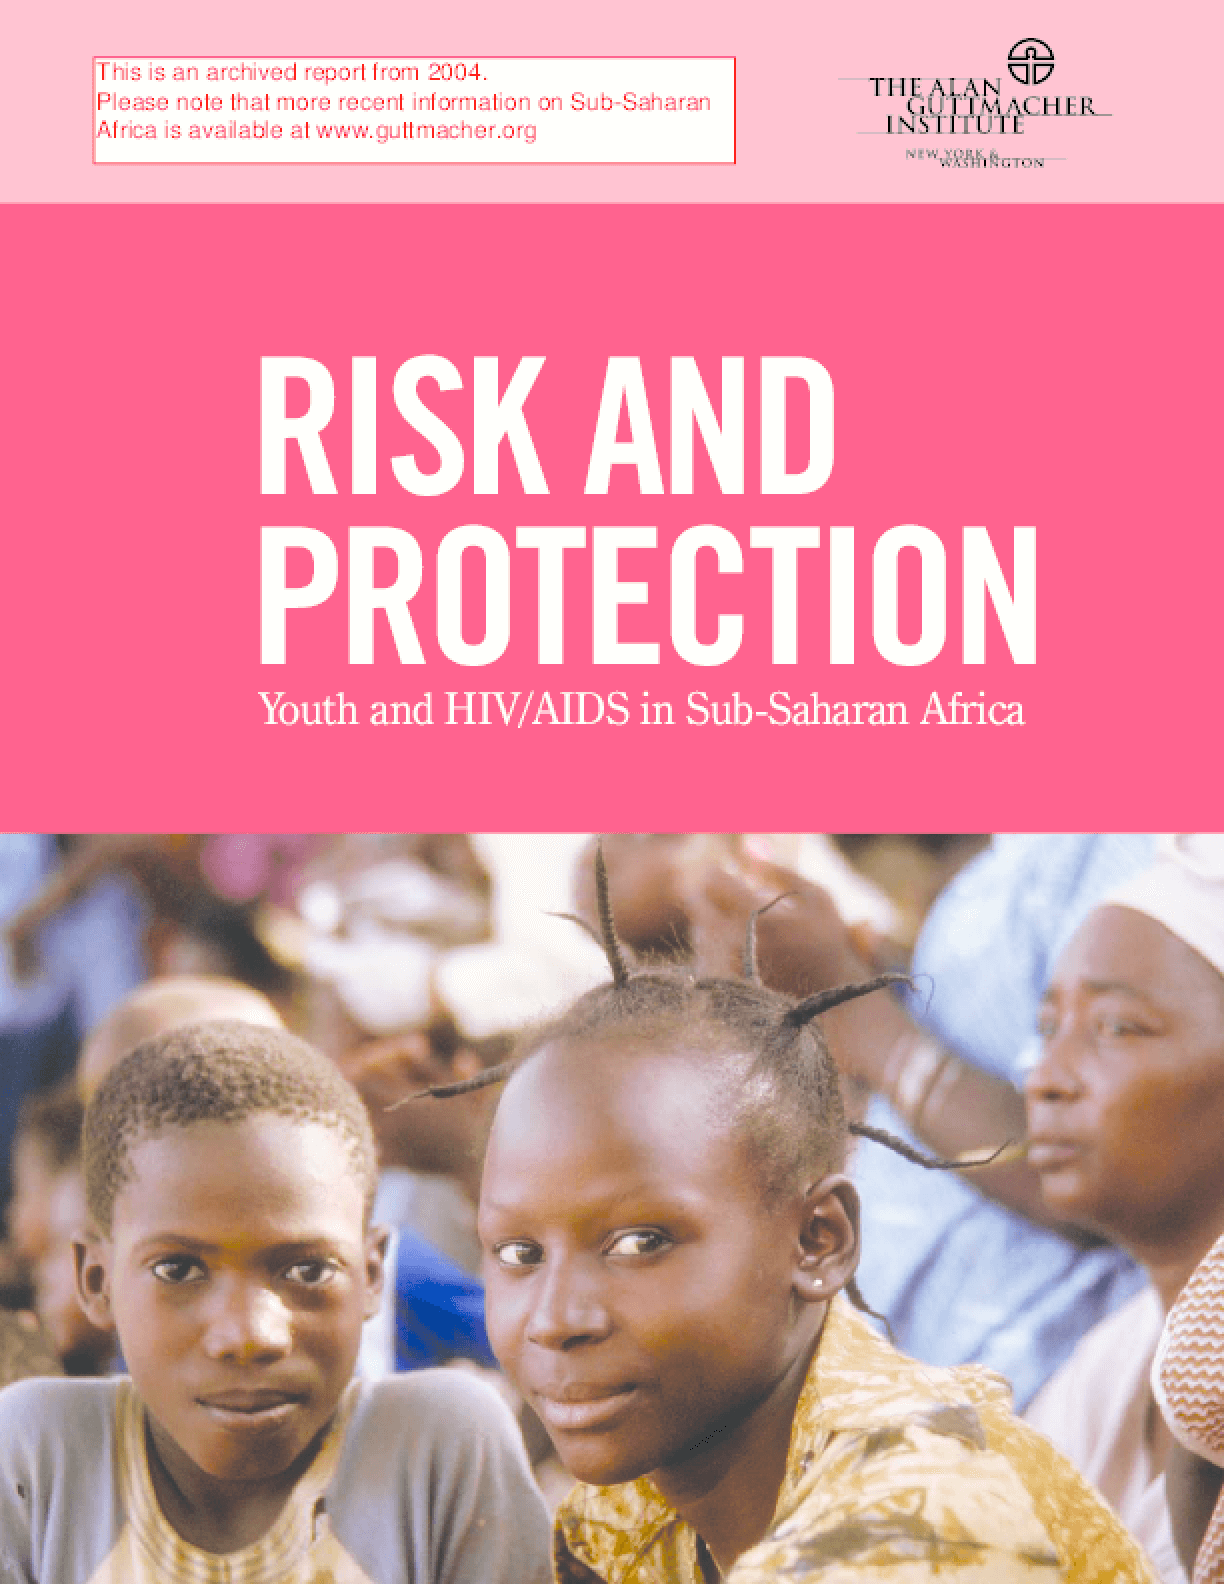 Risk and Protection: Youth and HIV/AIDS in Sub-Saharan Africa